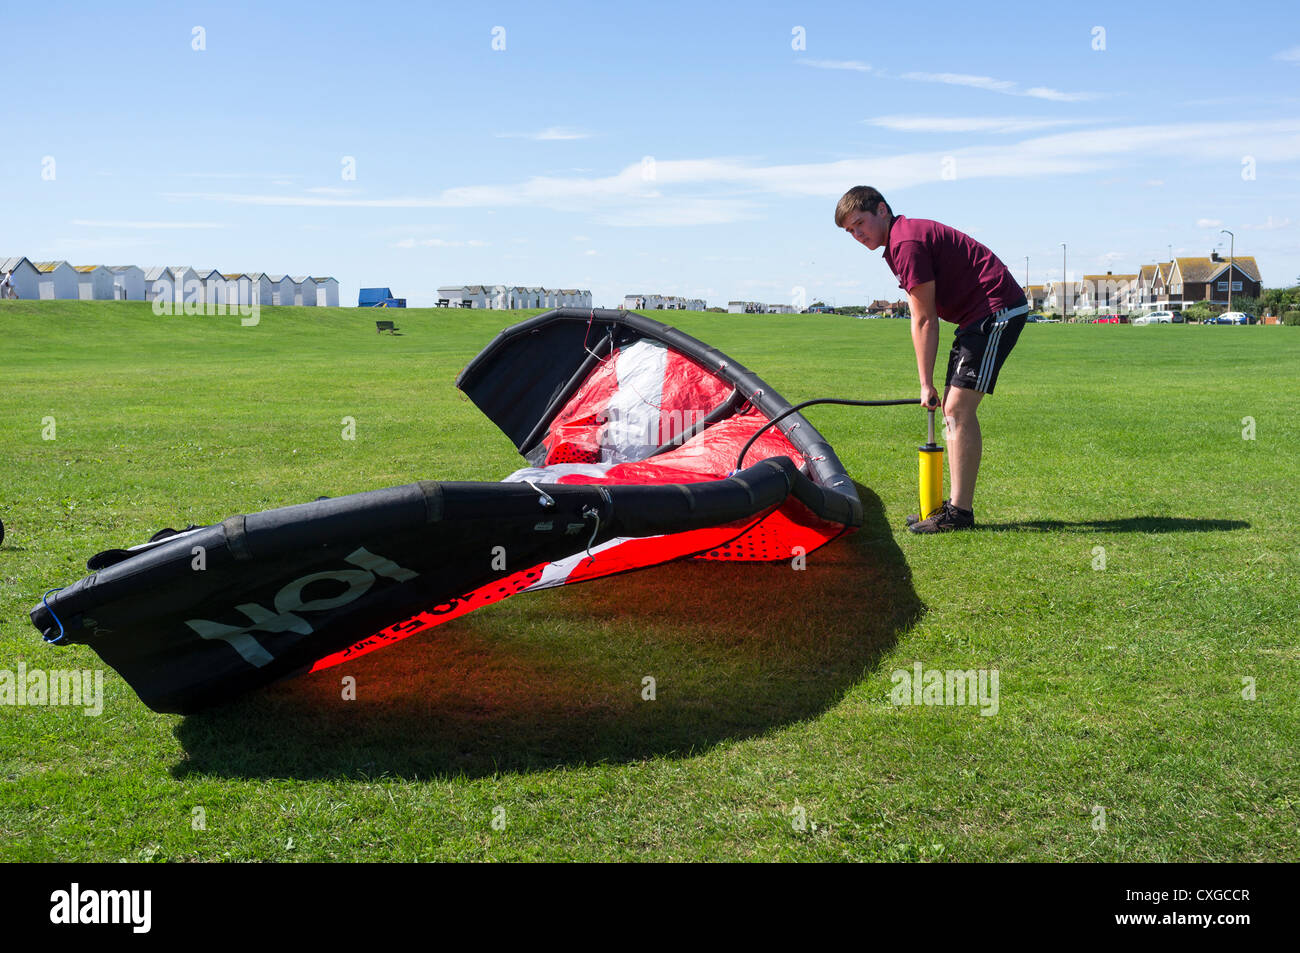 Inflating a large kite - Stock Image